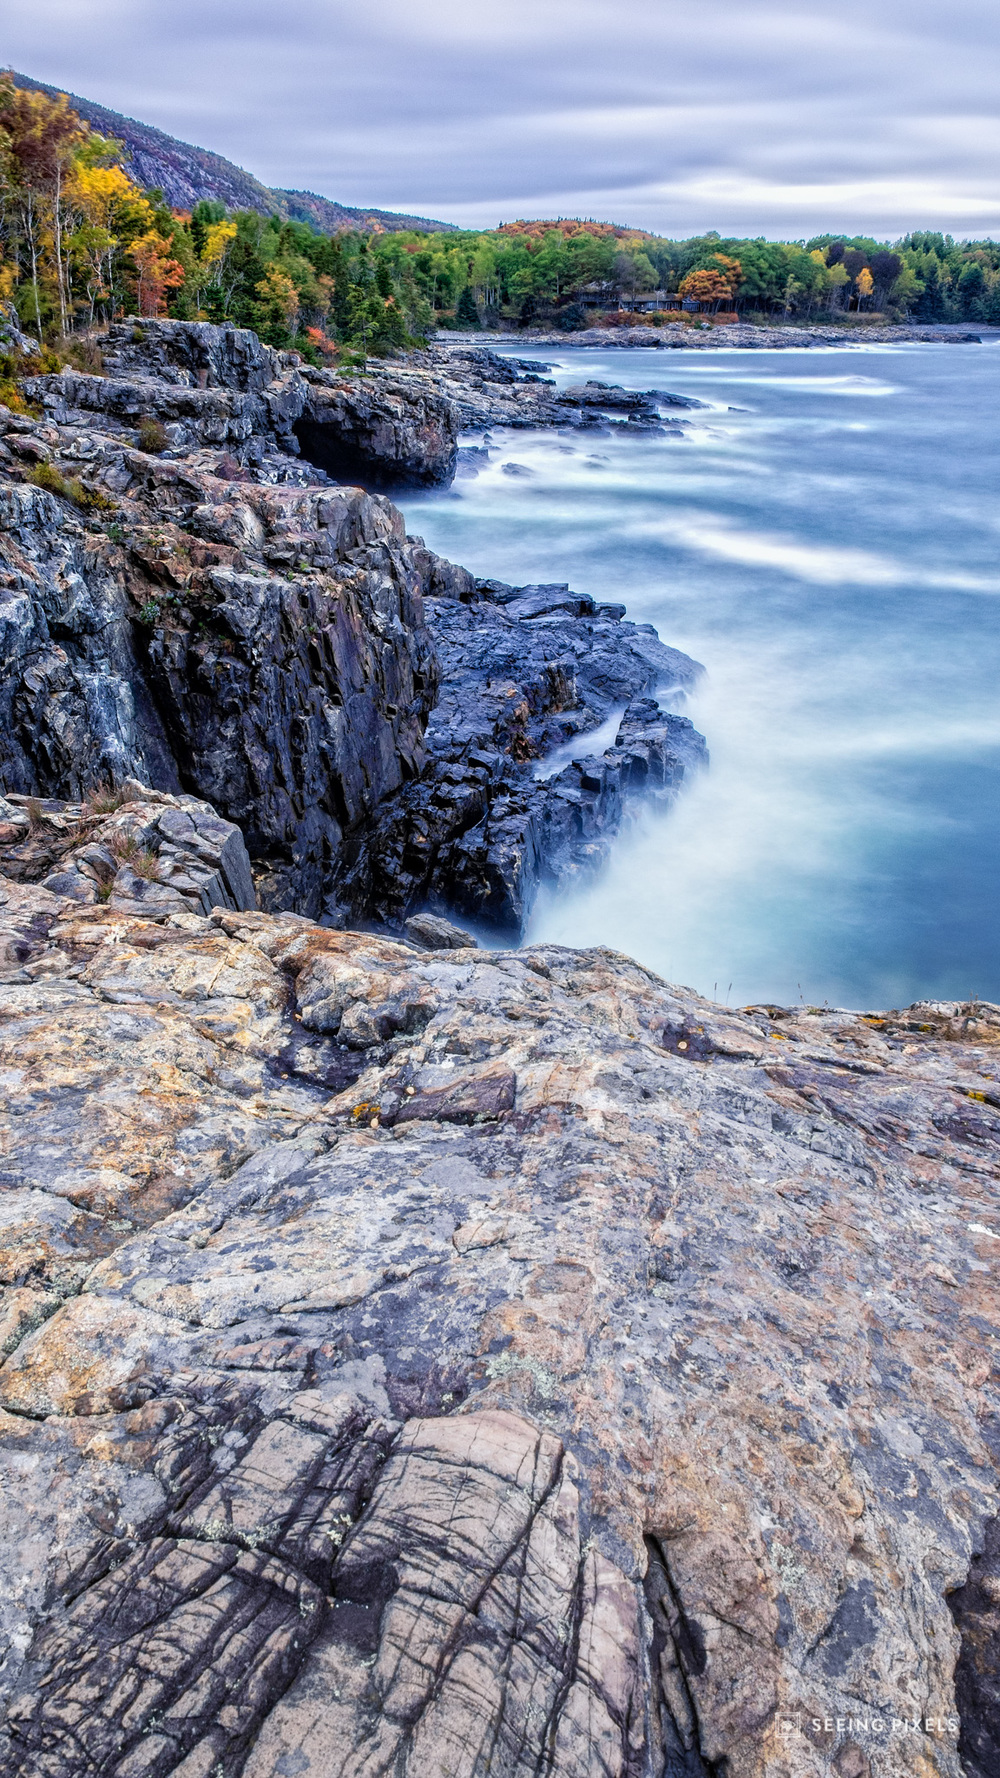 The Coastline is rugged, hard granite rock bustling up from the depths of the ocean